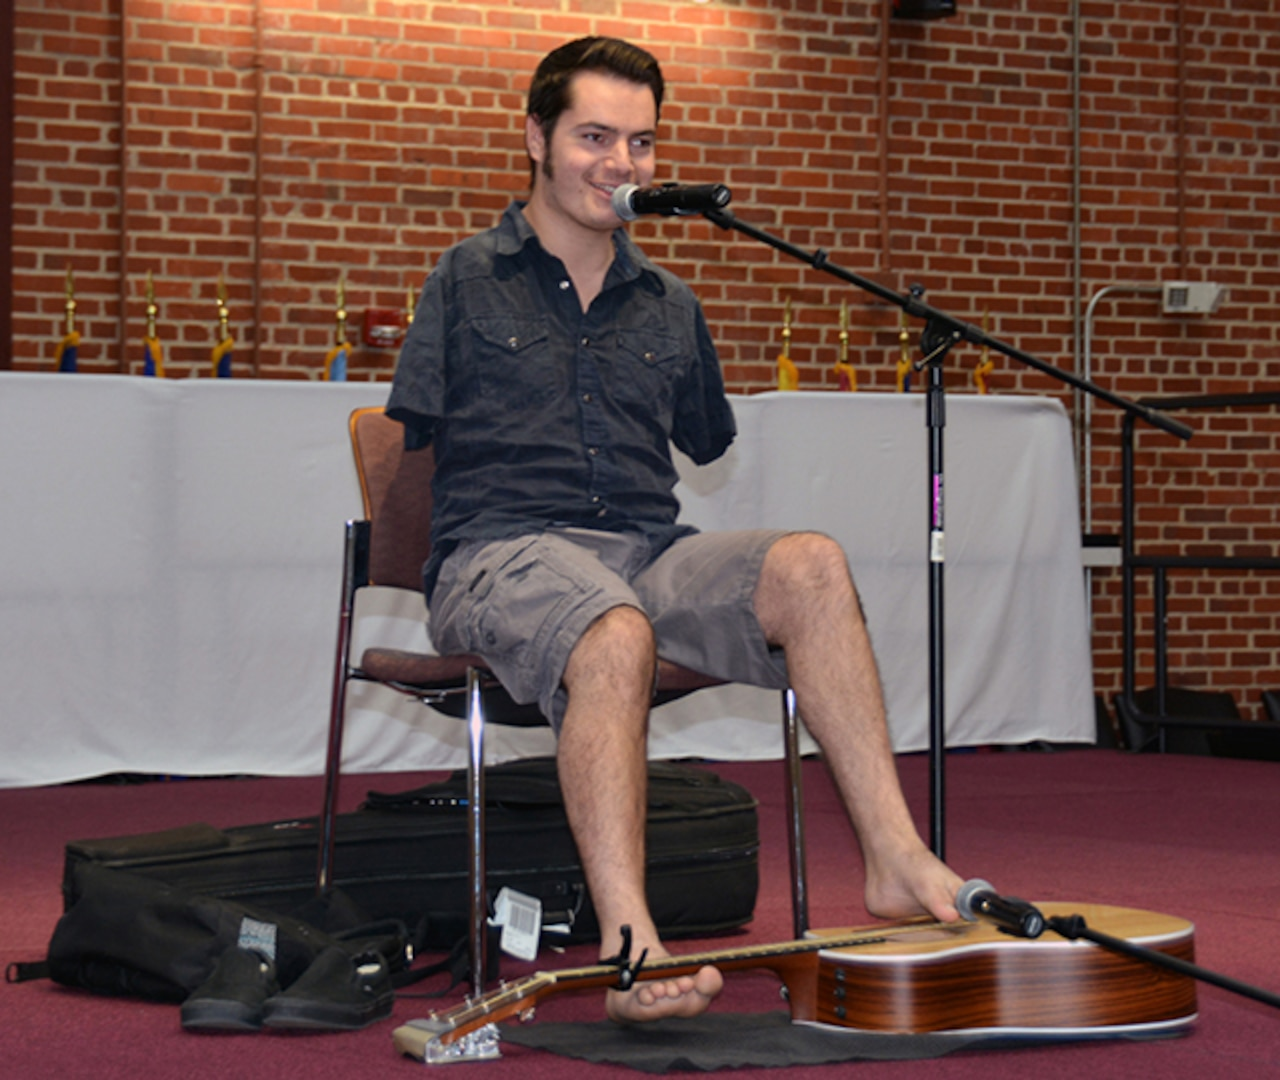 National recording artist George Dennehy shares his experience of growing up without arms during his performance as part of the National Disability Employment Awareness Month program at the Lotts Conference Center on Defense Supply Center Richmond, Virginia, Oct. 19, 2015.